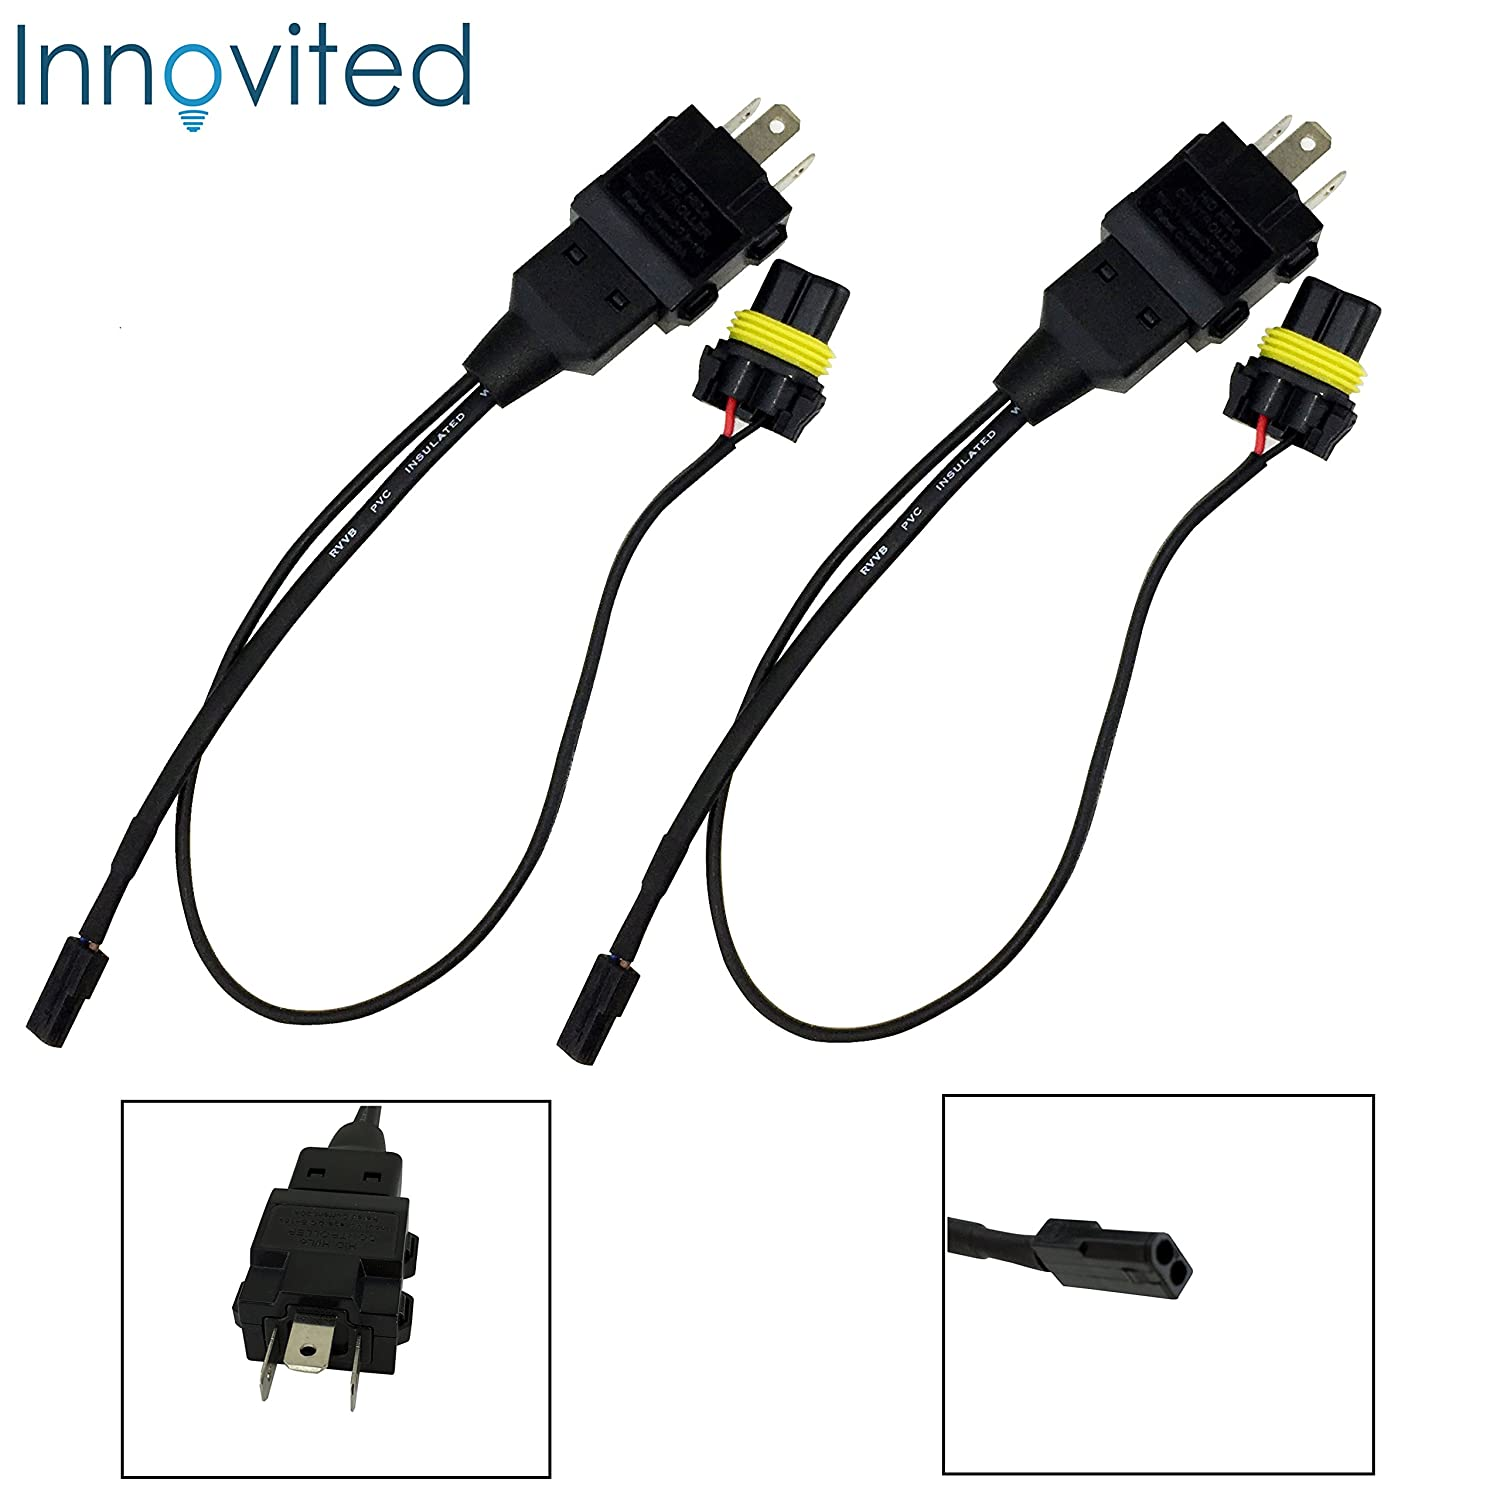 Innovited 2 Easy Relay Harness For H4 9003 Hi Lo Bi 9007 Hid Wiring Diagram Free Picture Xenon Conversion Kit Bulbs Controllers Automotive